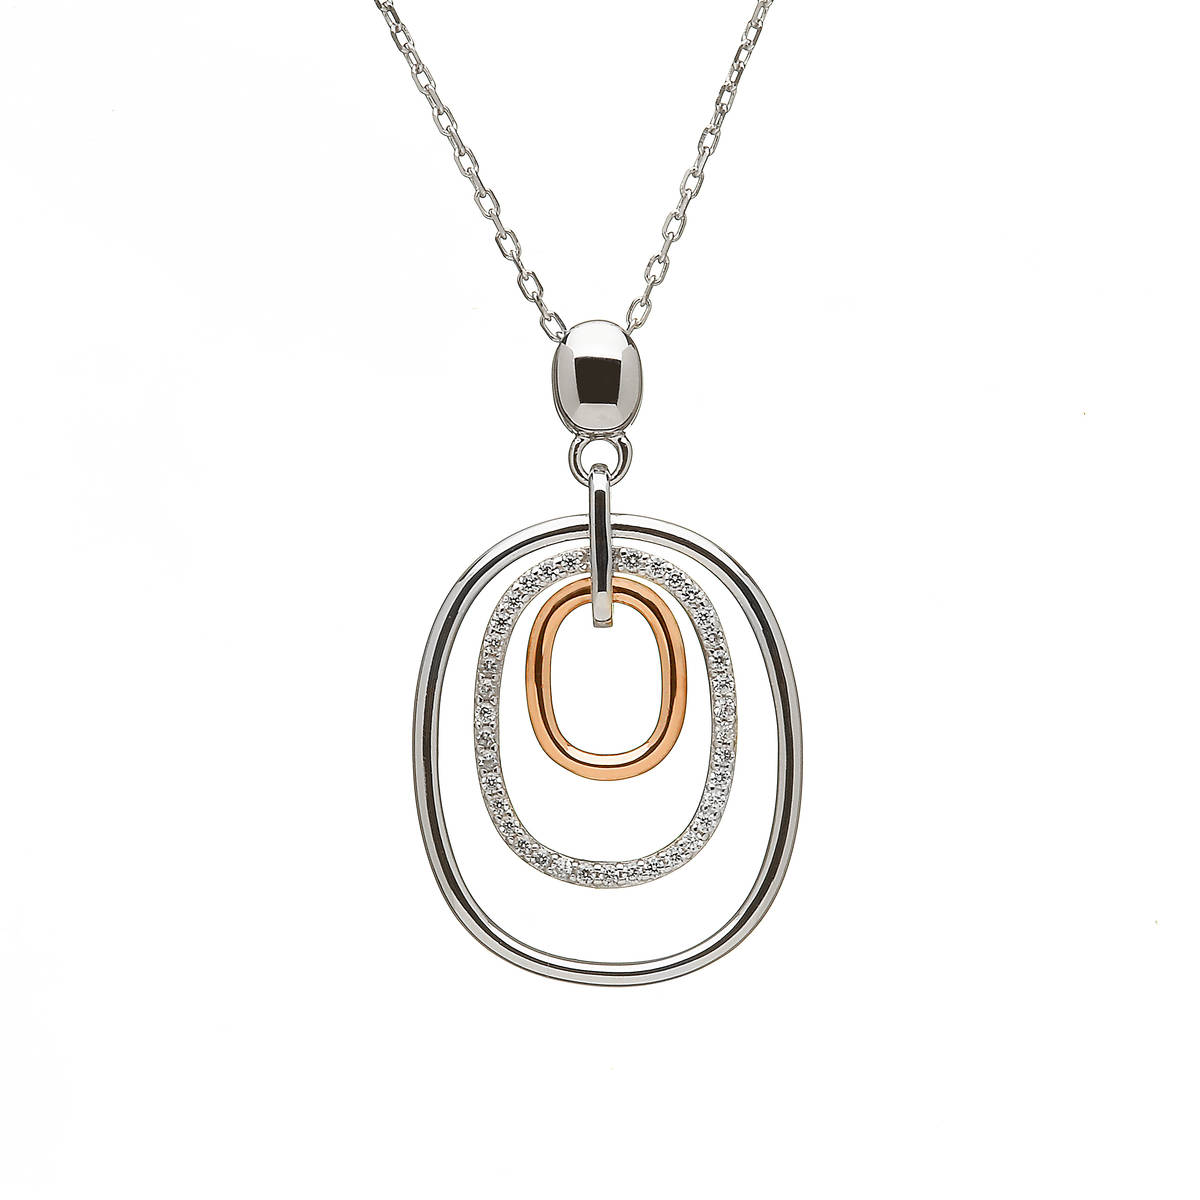 silver and rare Irish rose gold oval drop pendant with czs